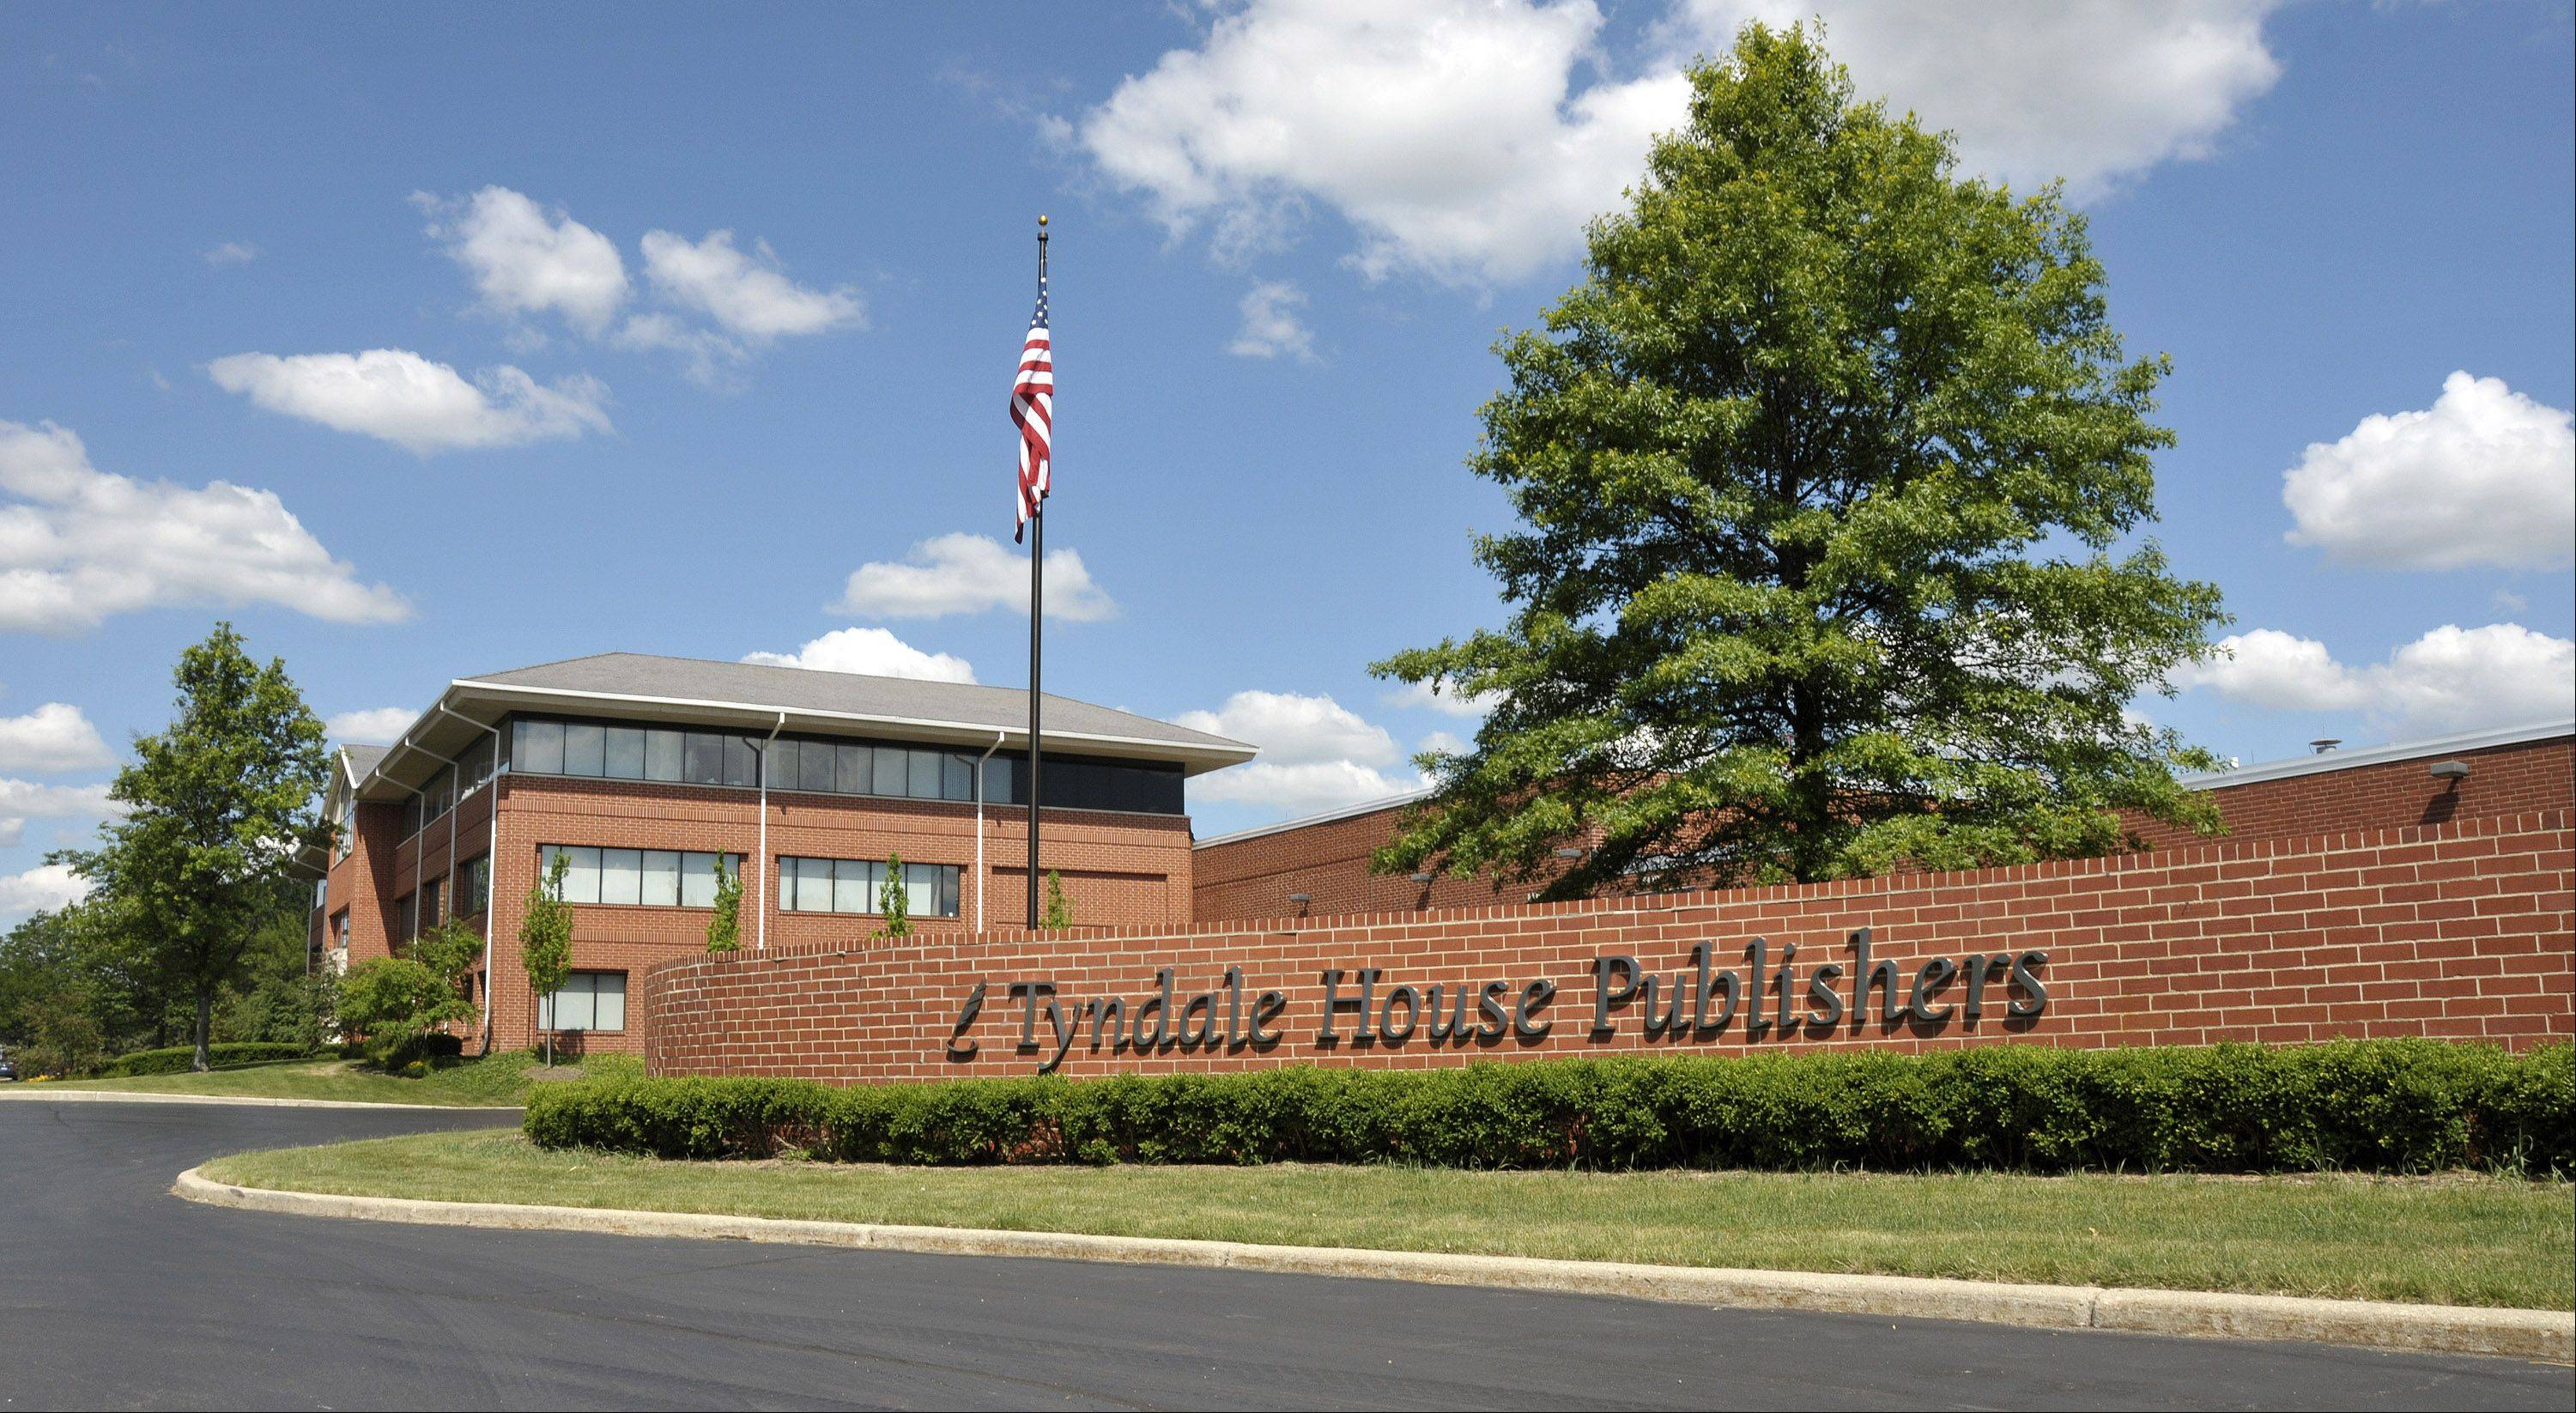 Started 50 years ago in the living room of Ken and Margaret Taylor, Tyndale House Publishers now is headquartered in Carol Stream and has 260 employees.